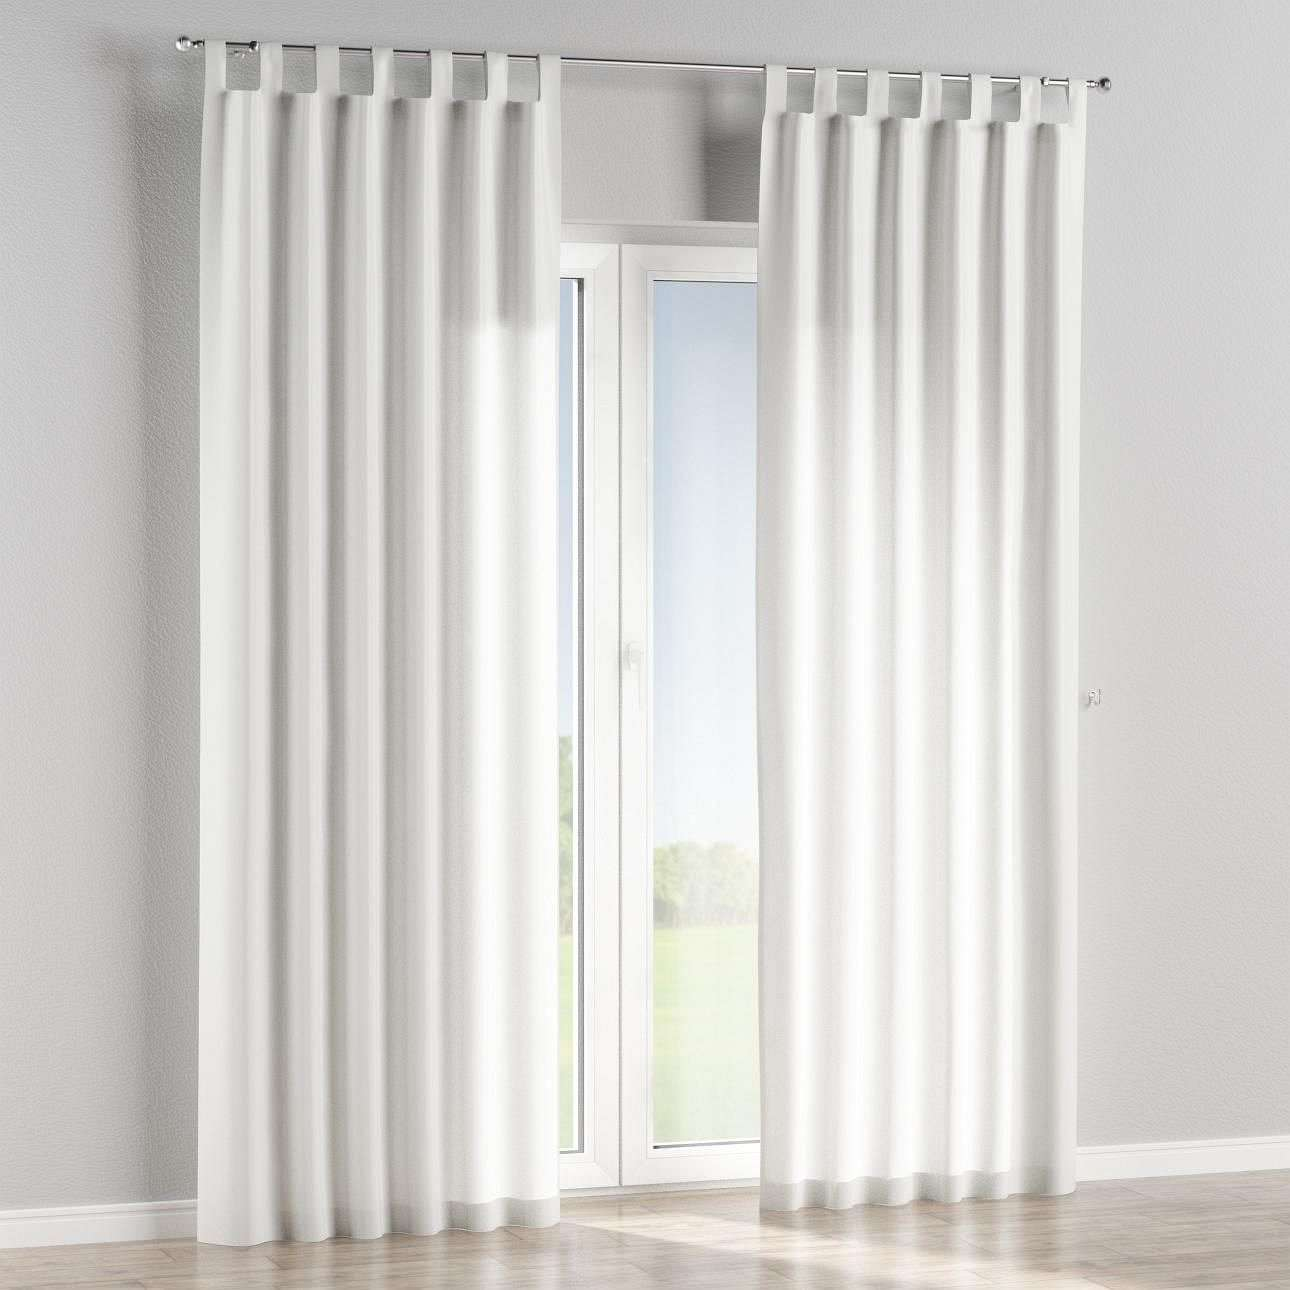 Tab top lined curtains in collection Fleur , fabric: 139-52